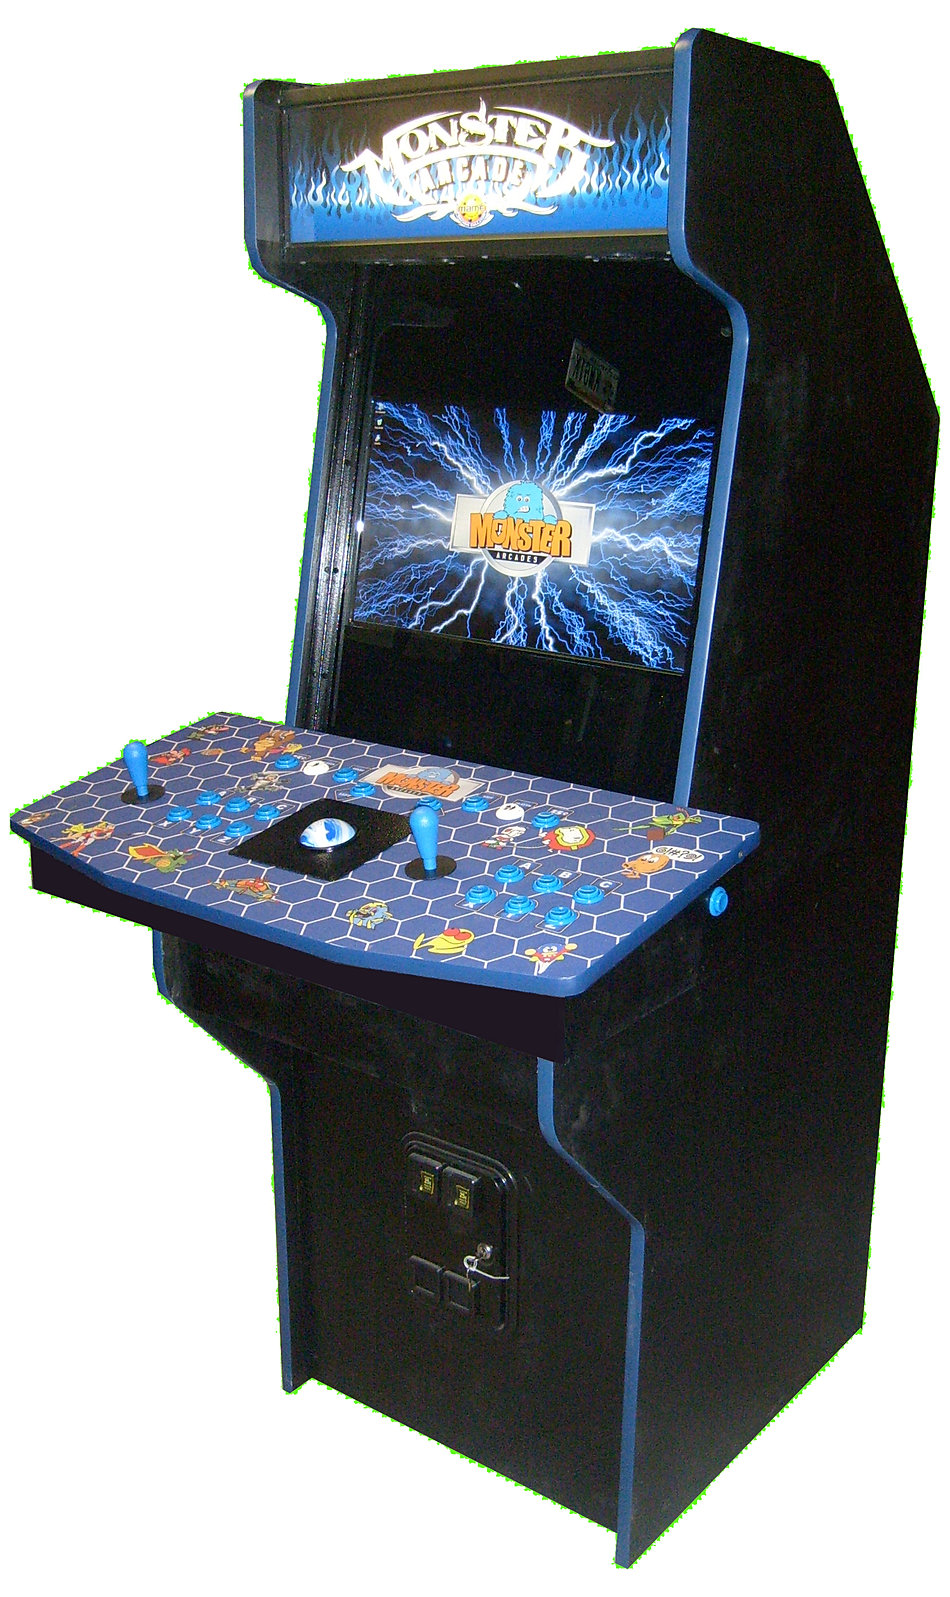 mame arcade cabinet mame arcade cabinet 23020